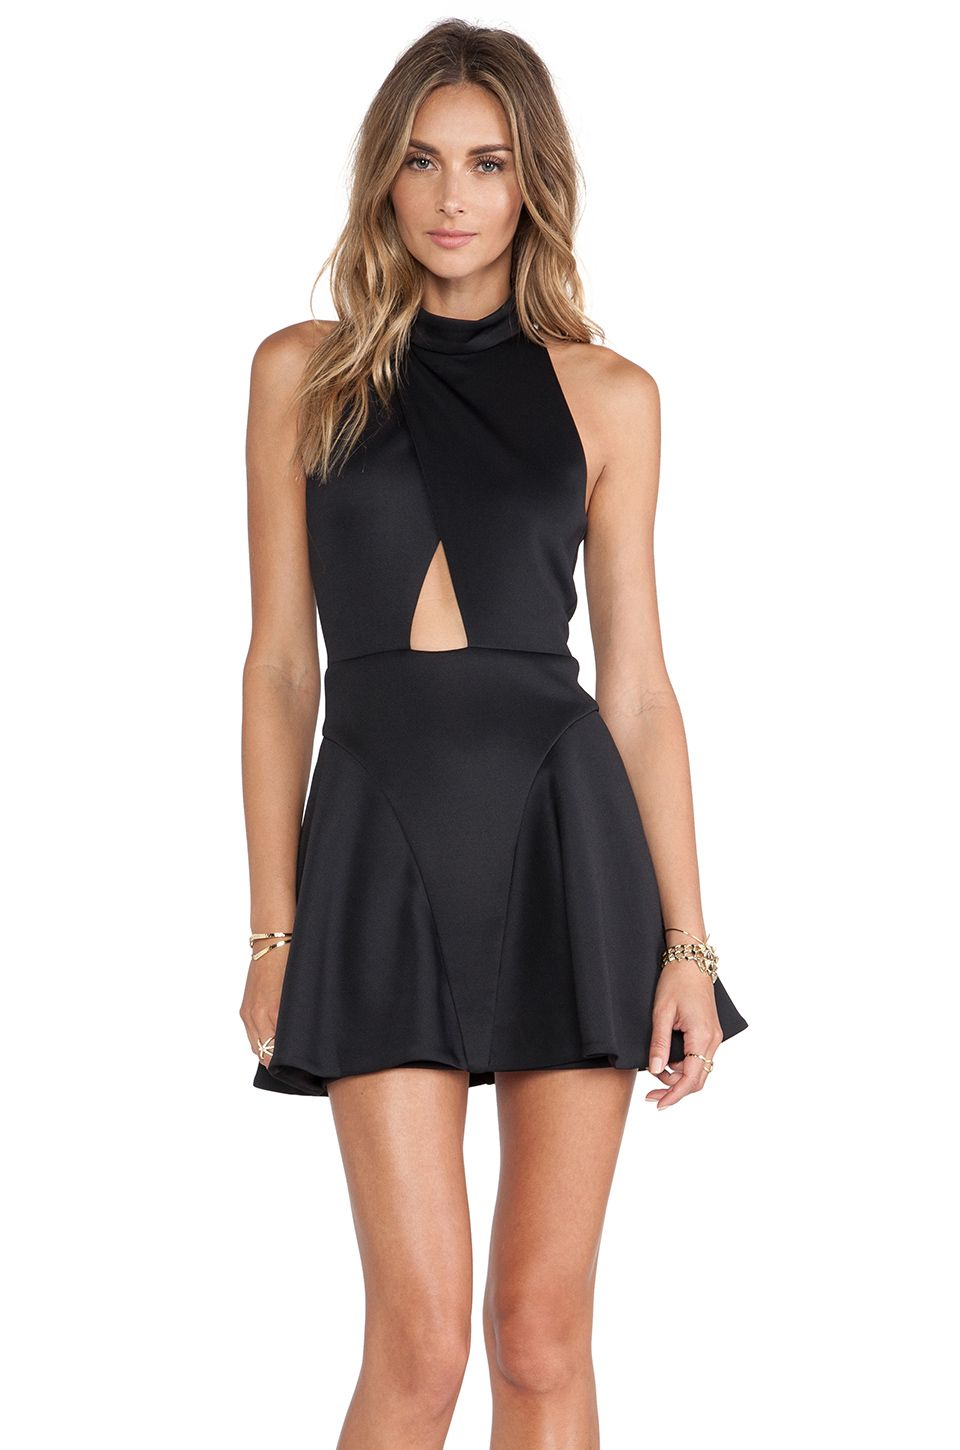 NBD Cocktail Fit & Flare Dress in Black | THE LBD | Pinterest | Fit ...